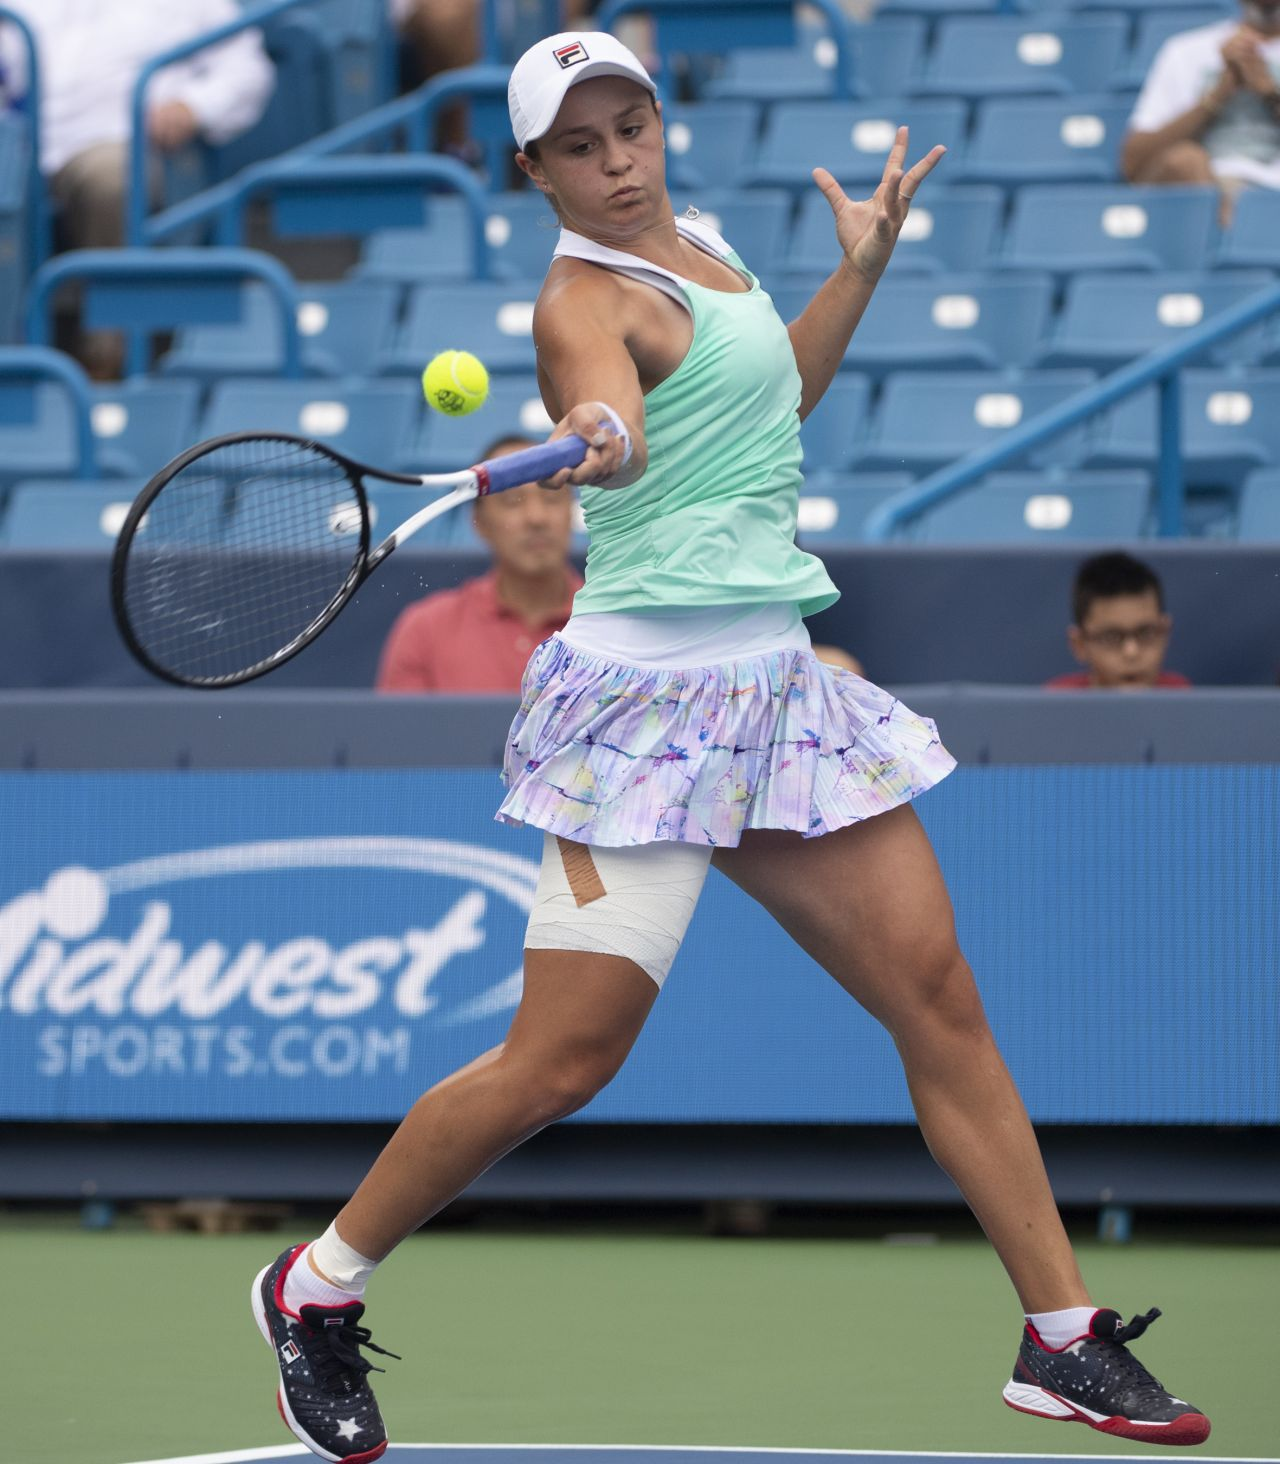 Ashleigh Barty: 2018 Western & Southern Open In